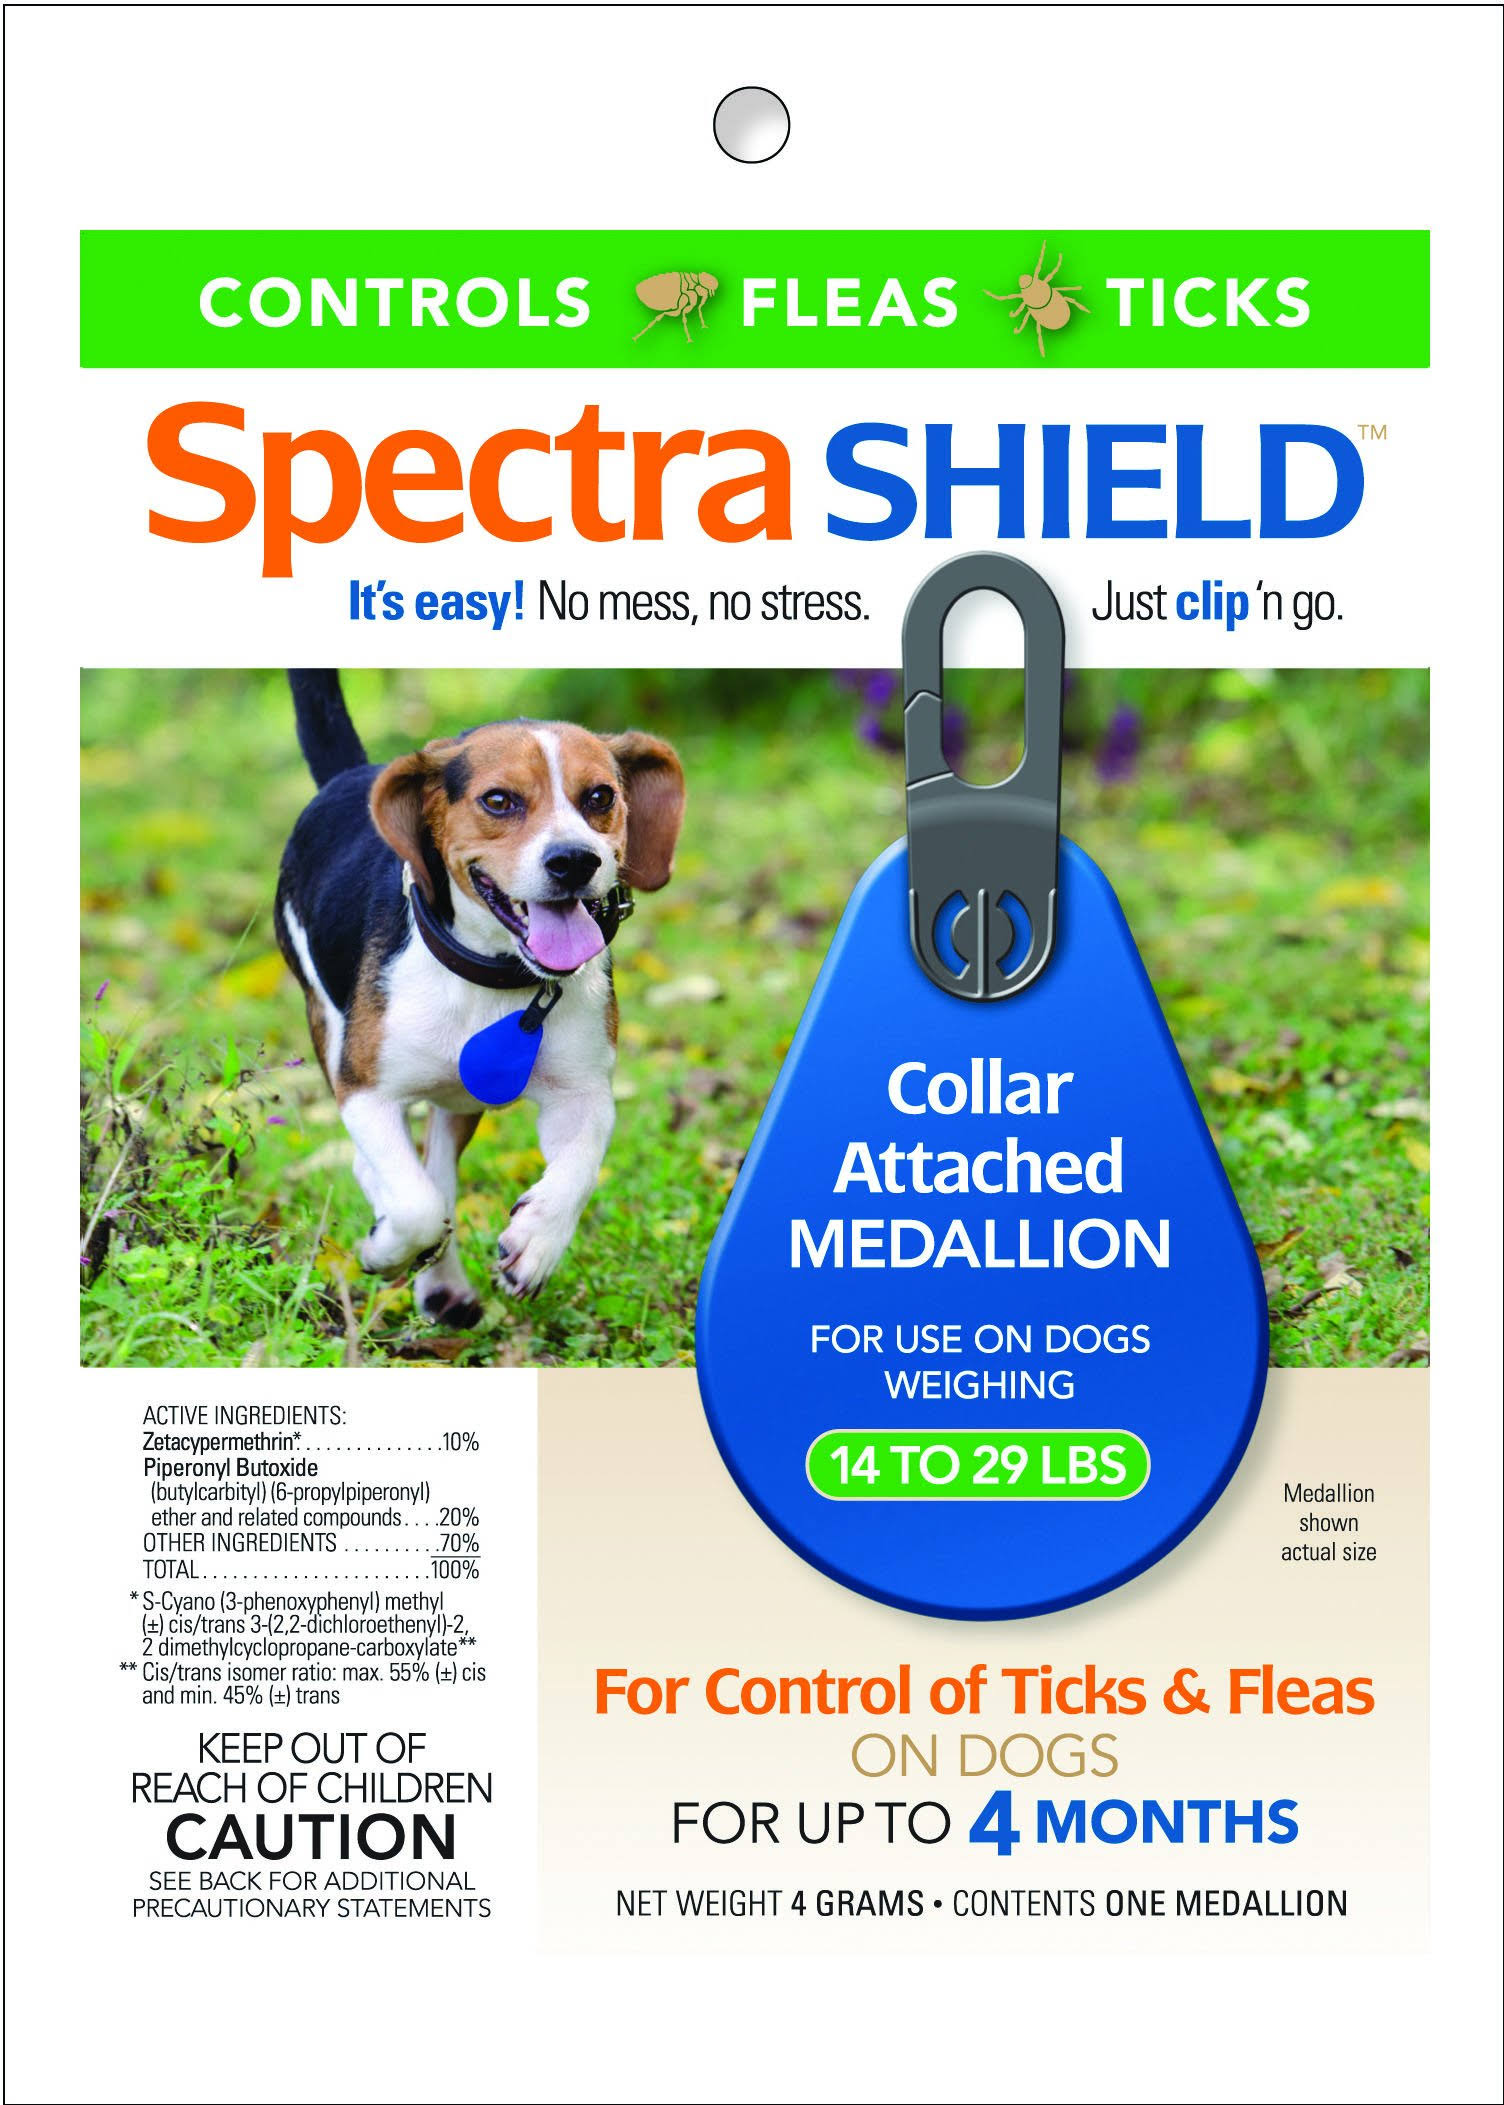 Spectra Shield Flea and Tick Collar Attach Medallion for Dogs - 14 to 29lbs